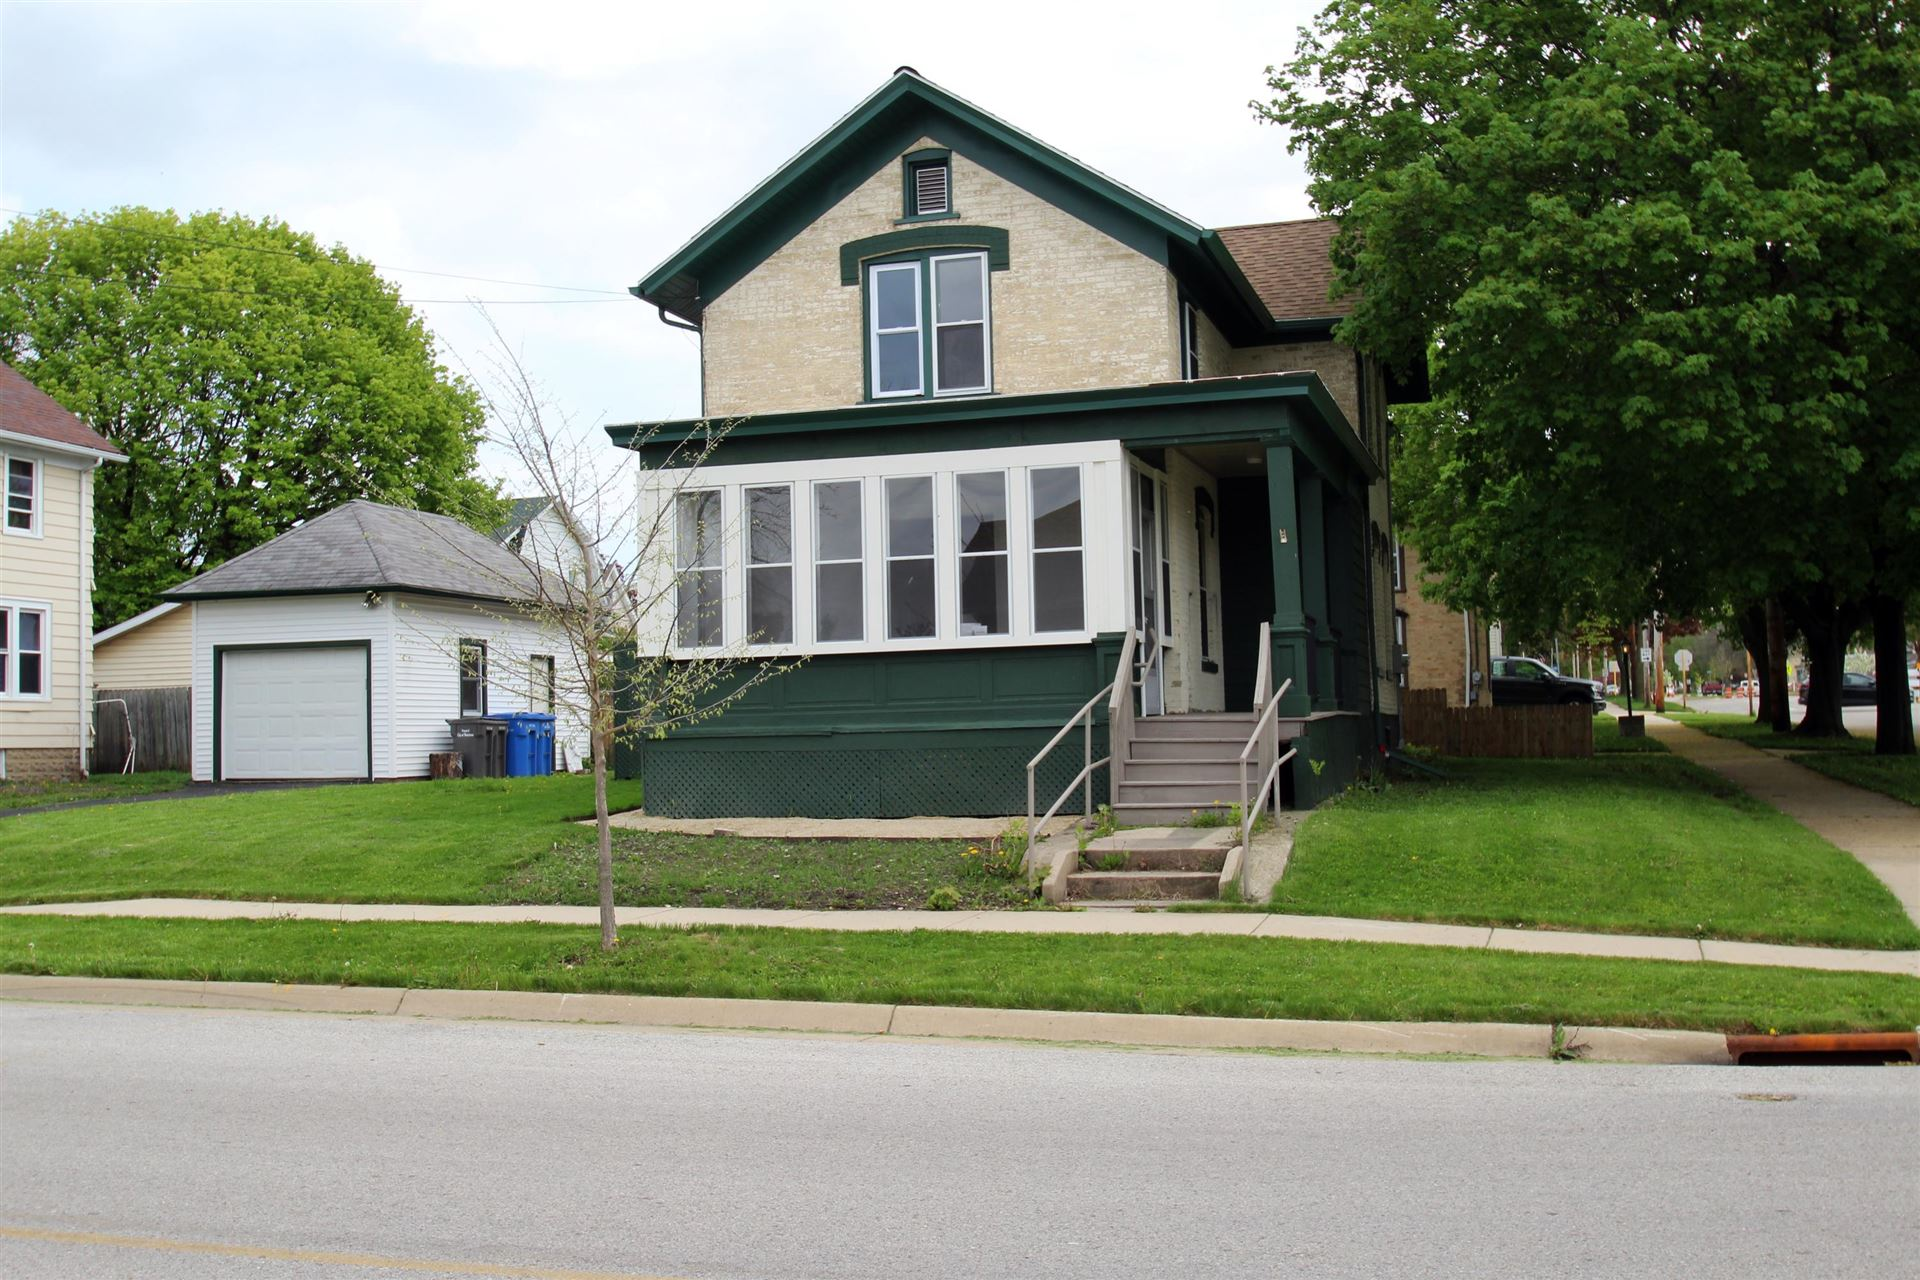 713 S Second St #713 1\/2, Watertown, WI 53094 - #: 1689610